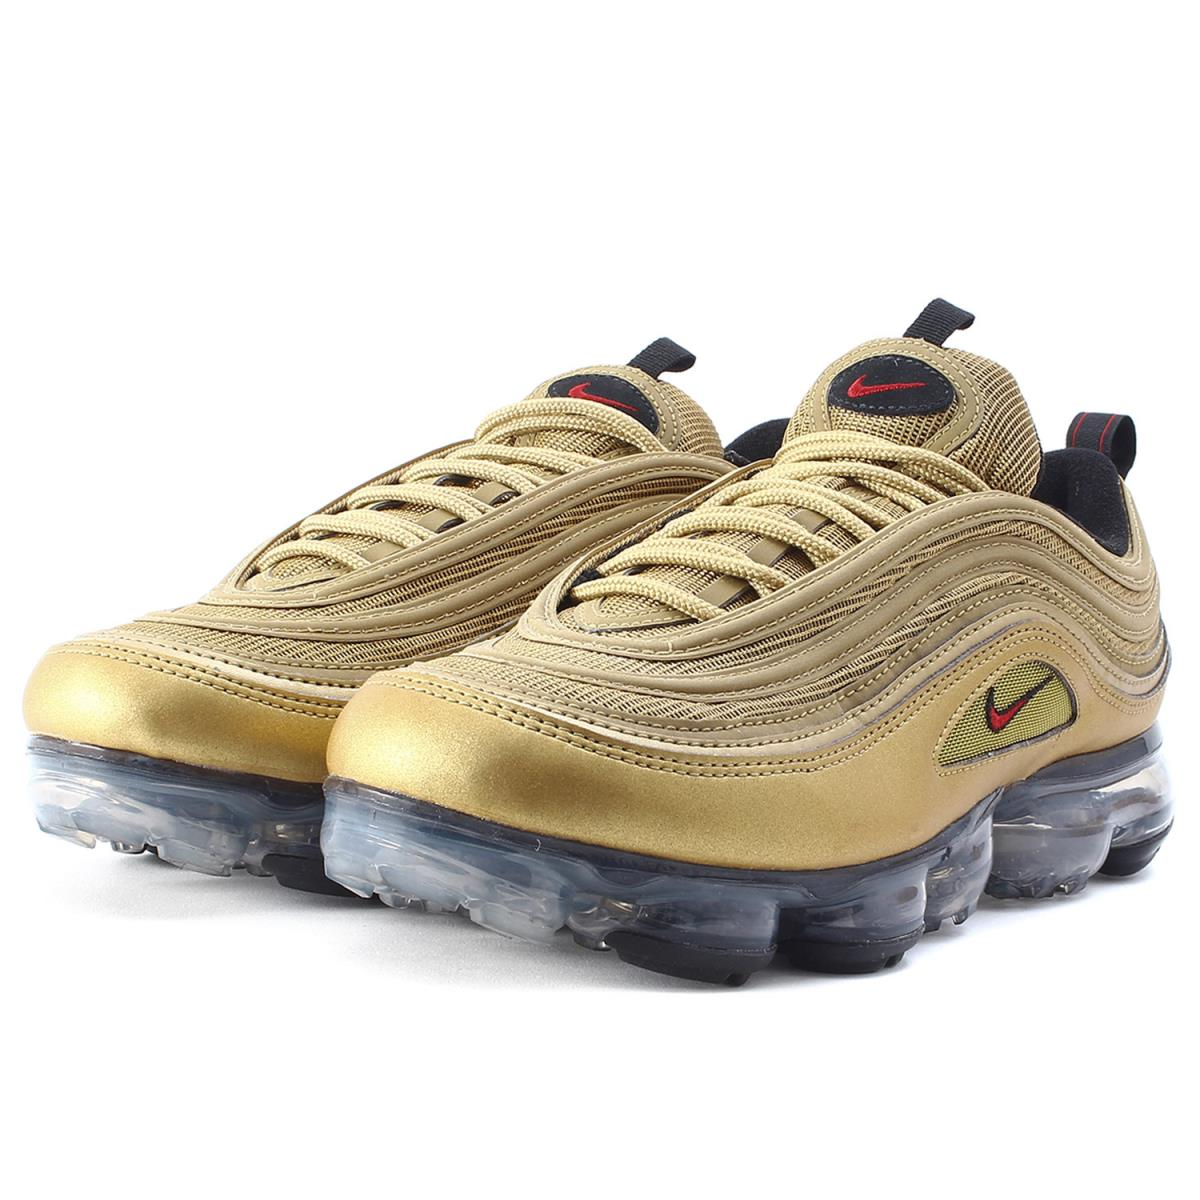 7e0b70c312 ... NIKE (Nike) AIR VAPORMAX 97 METALLIC GOLD (AJ7291-700) metallic gold ...